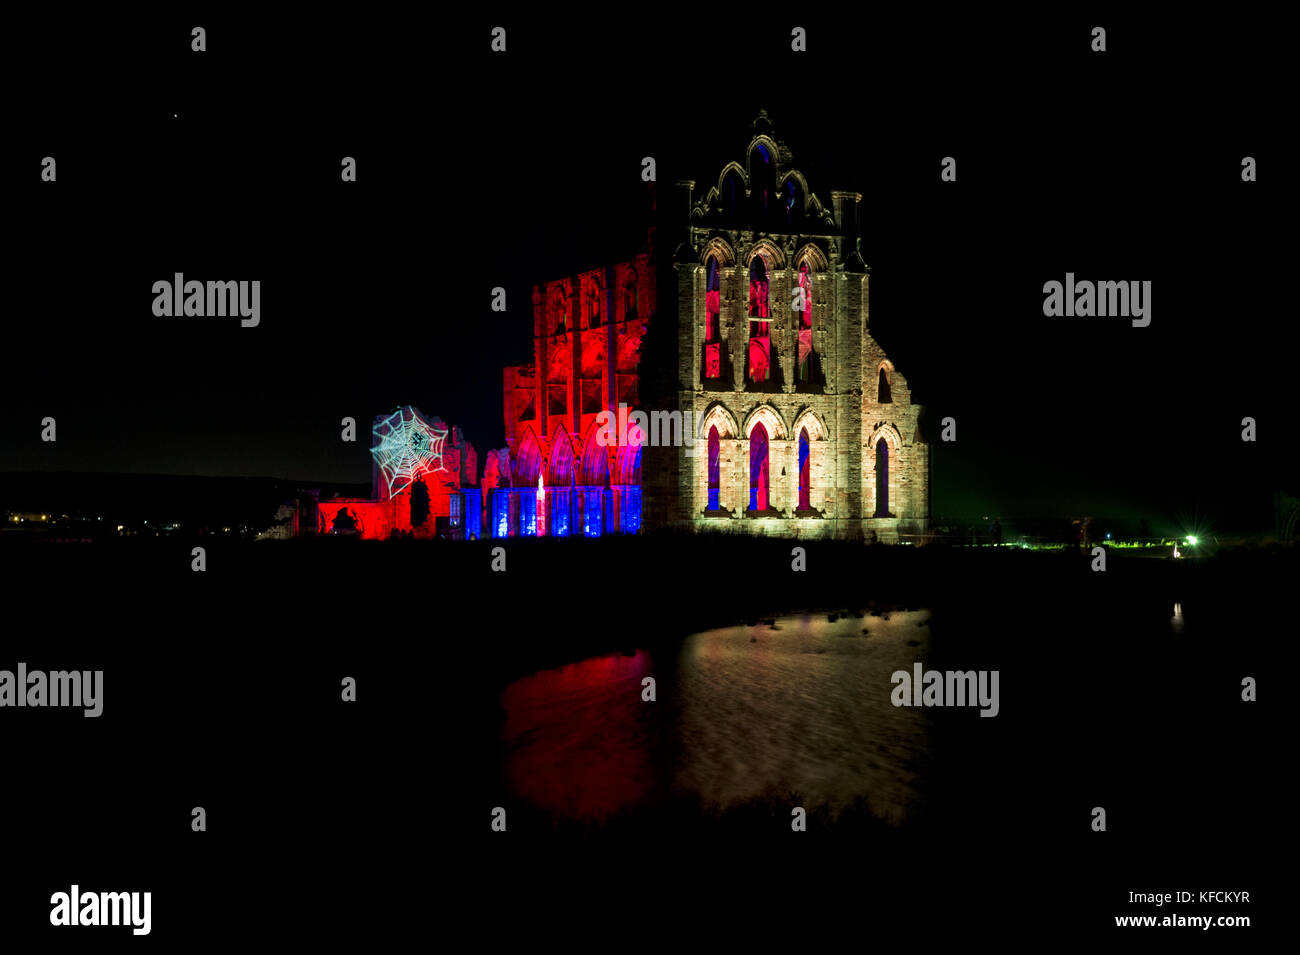 The annual illuminations of Whitby Abbey in Whitby, North Yorkshire - Stock Image